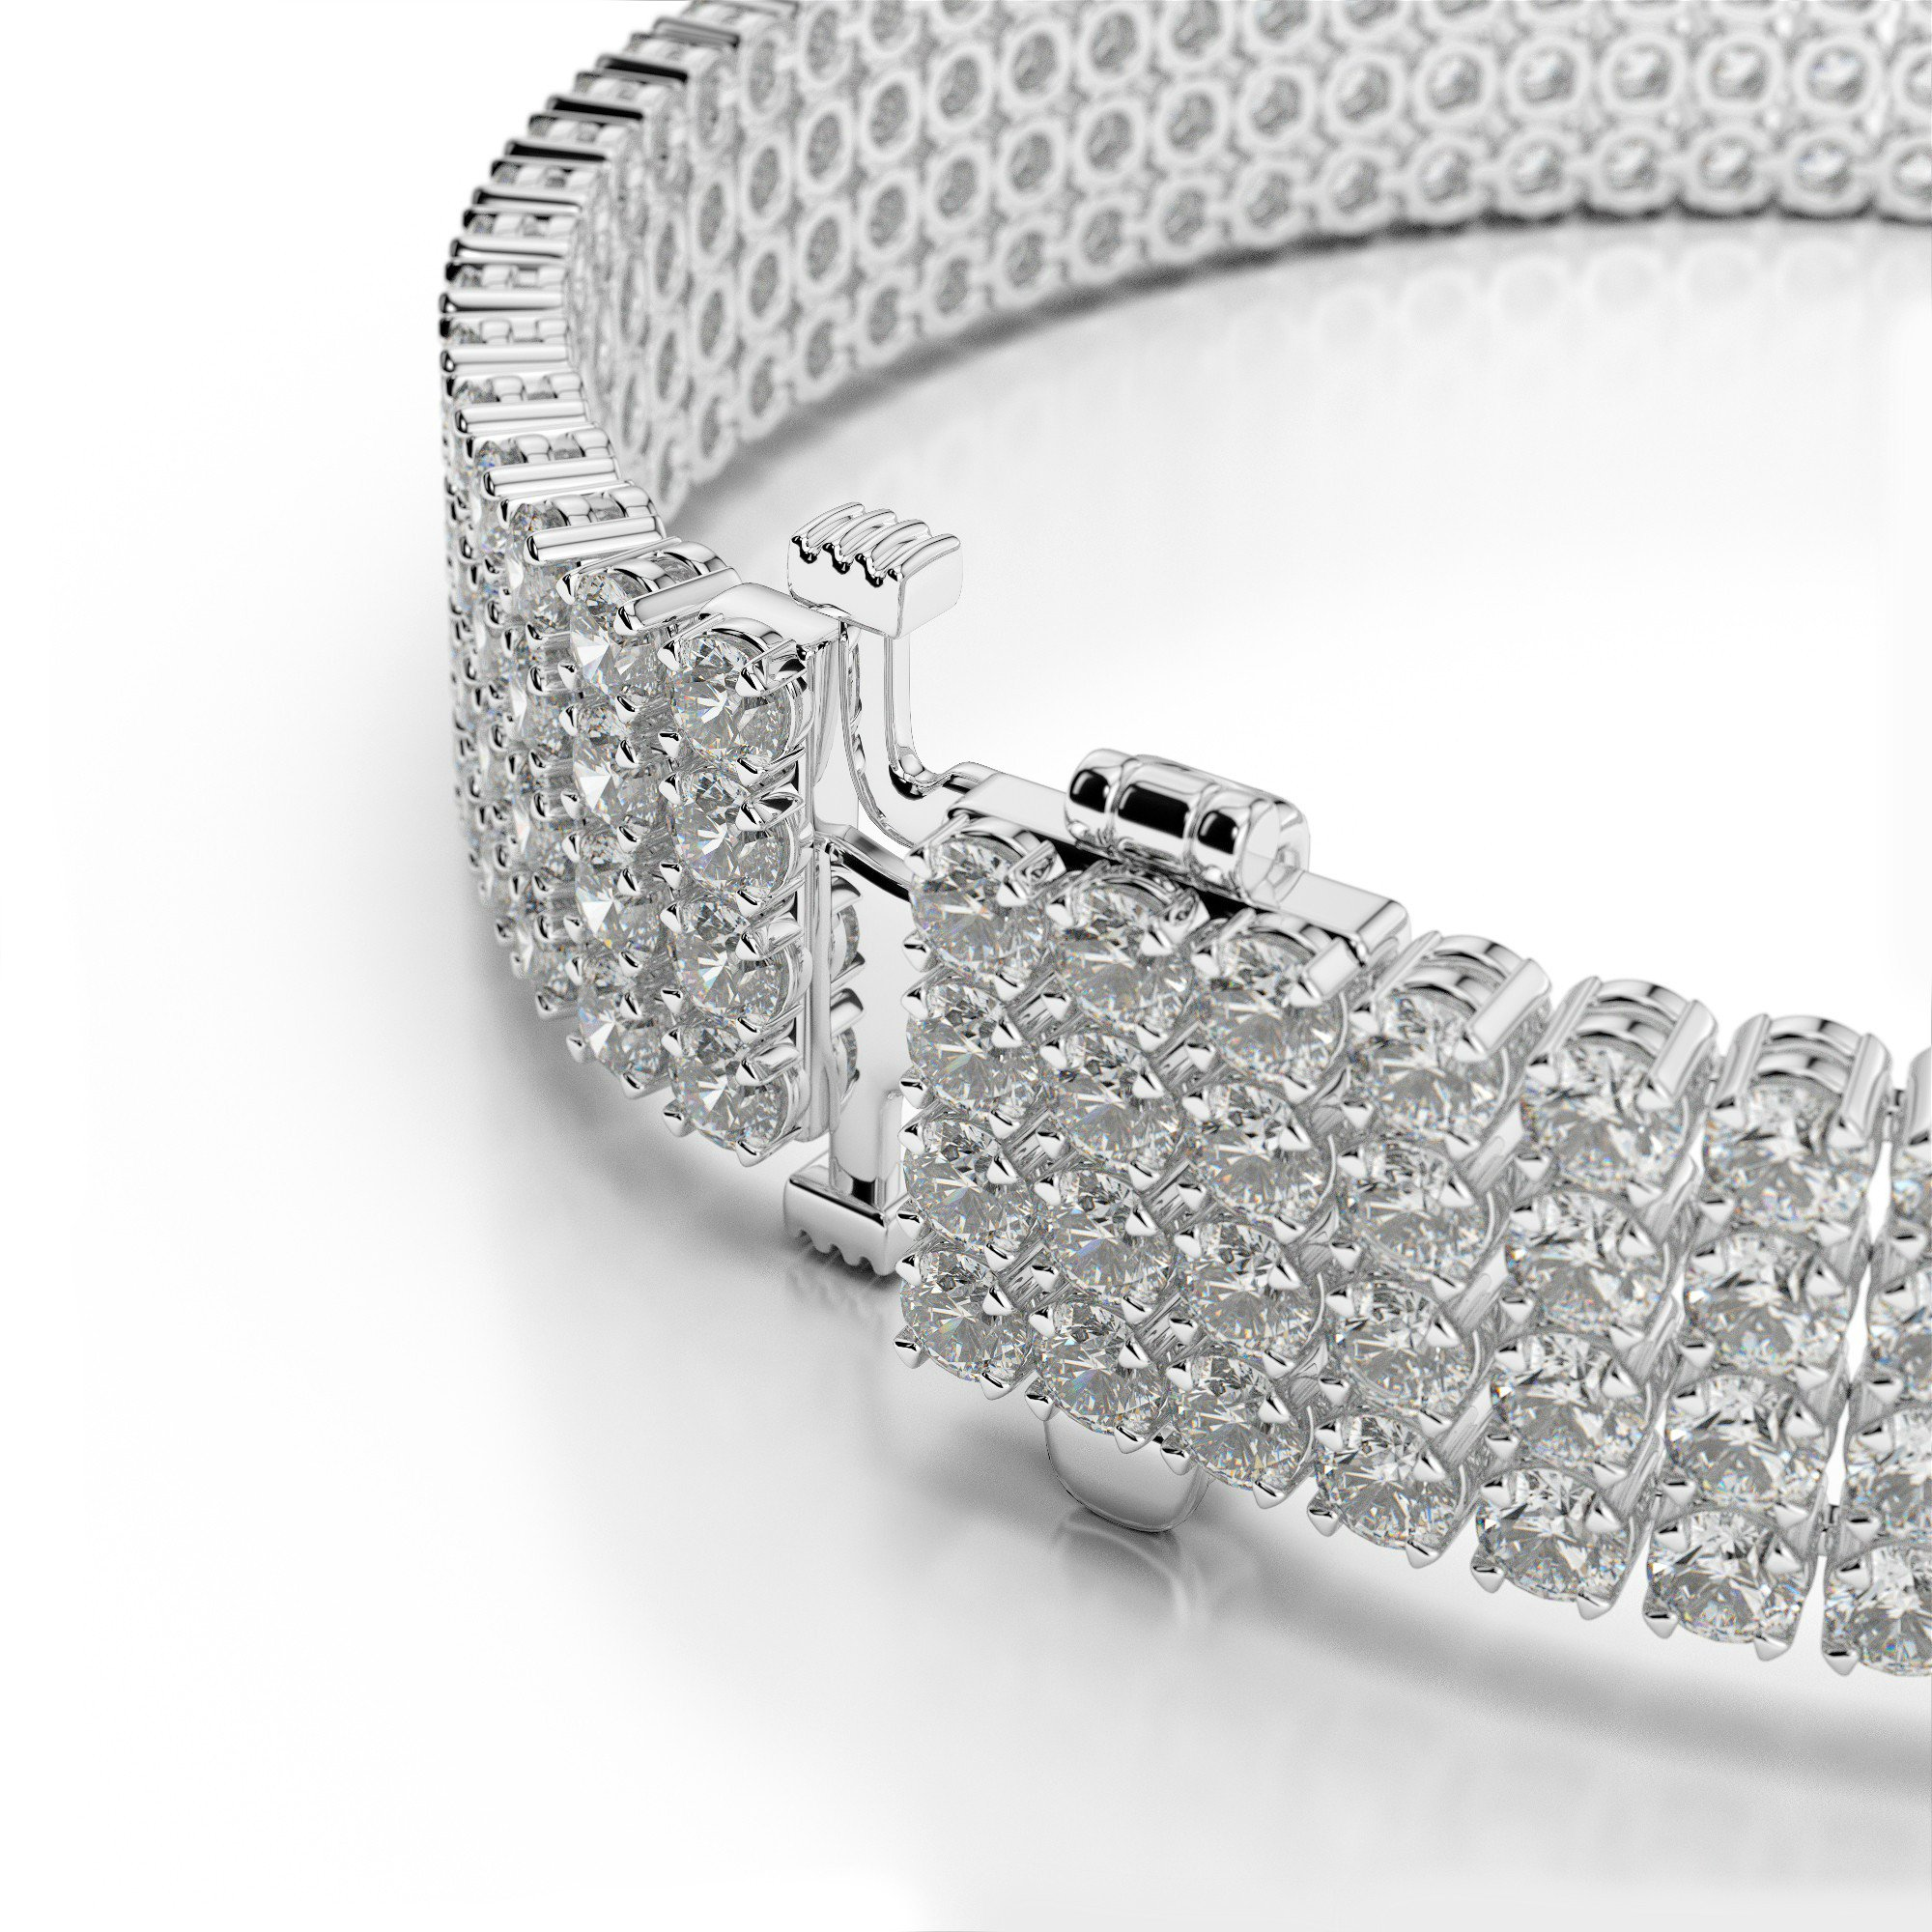 9 Carat Diamond Four Row Bracelet